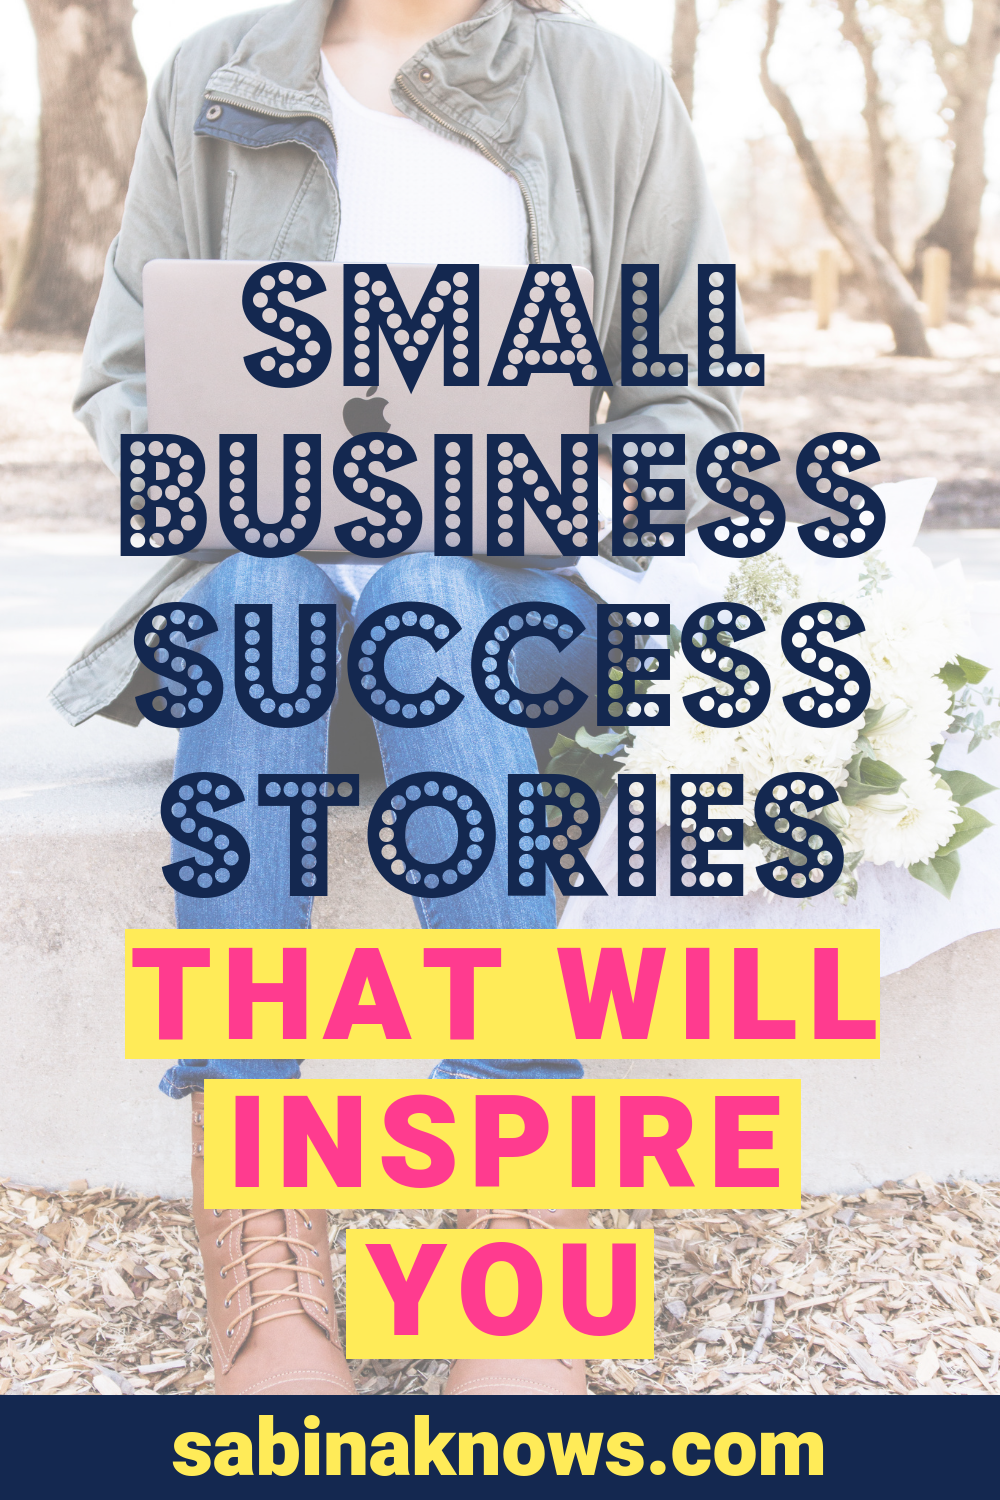 When small business owners like you take my classes on public relations, they start seeing success. Things change. People see your business in the press and your business changes. And when your business changes your life changes. #businessinspo #inspiration #bizmotivation #successstories #PR #publicrelations